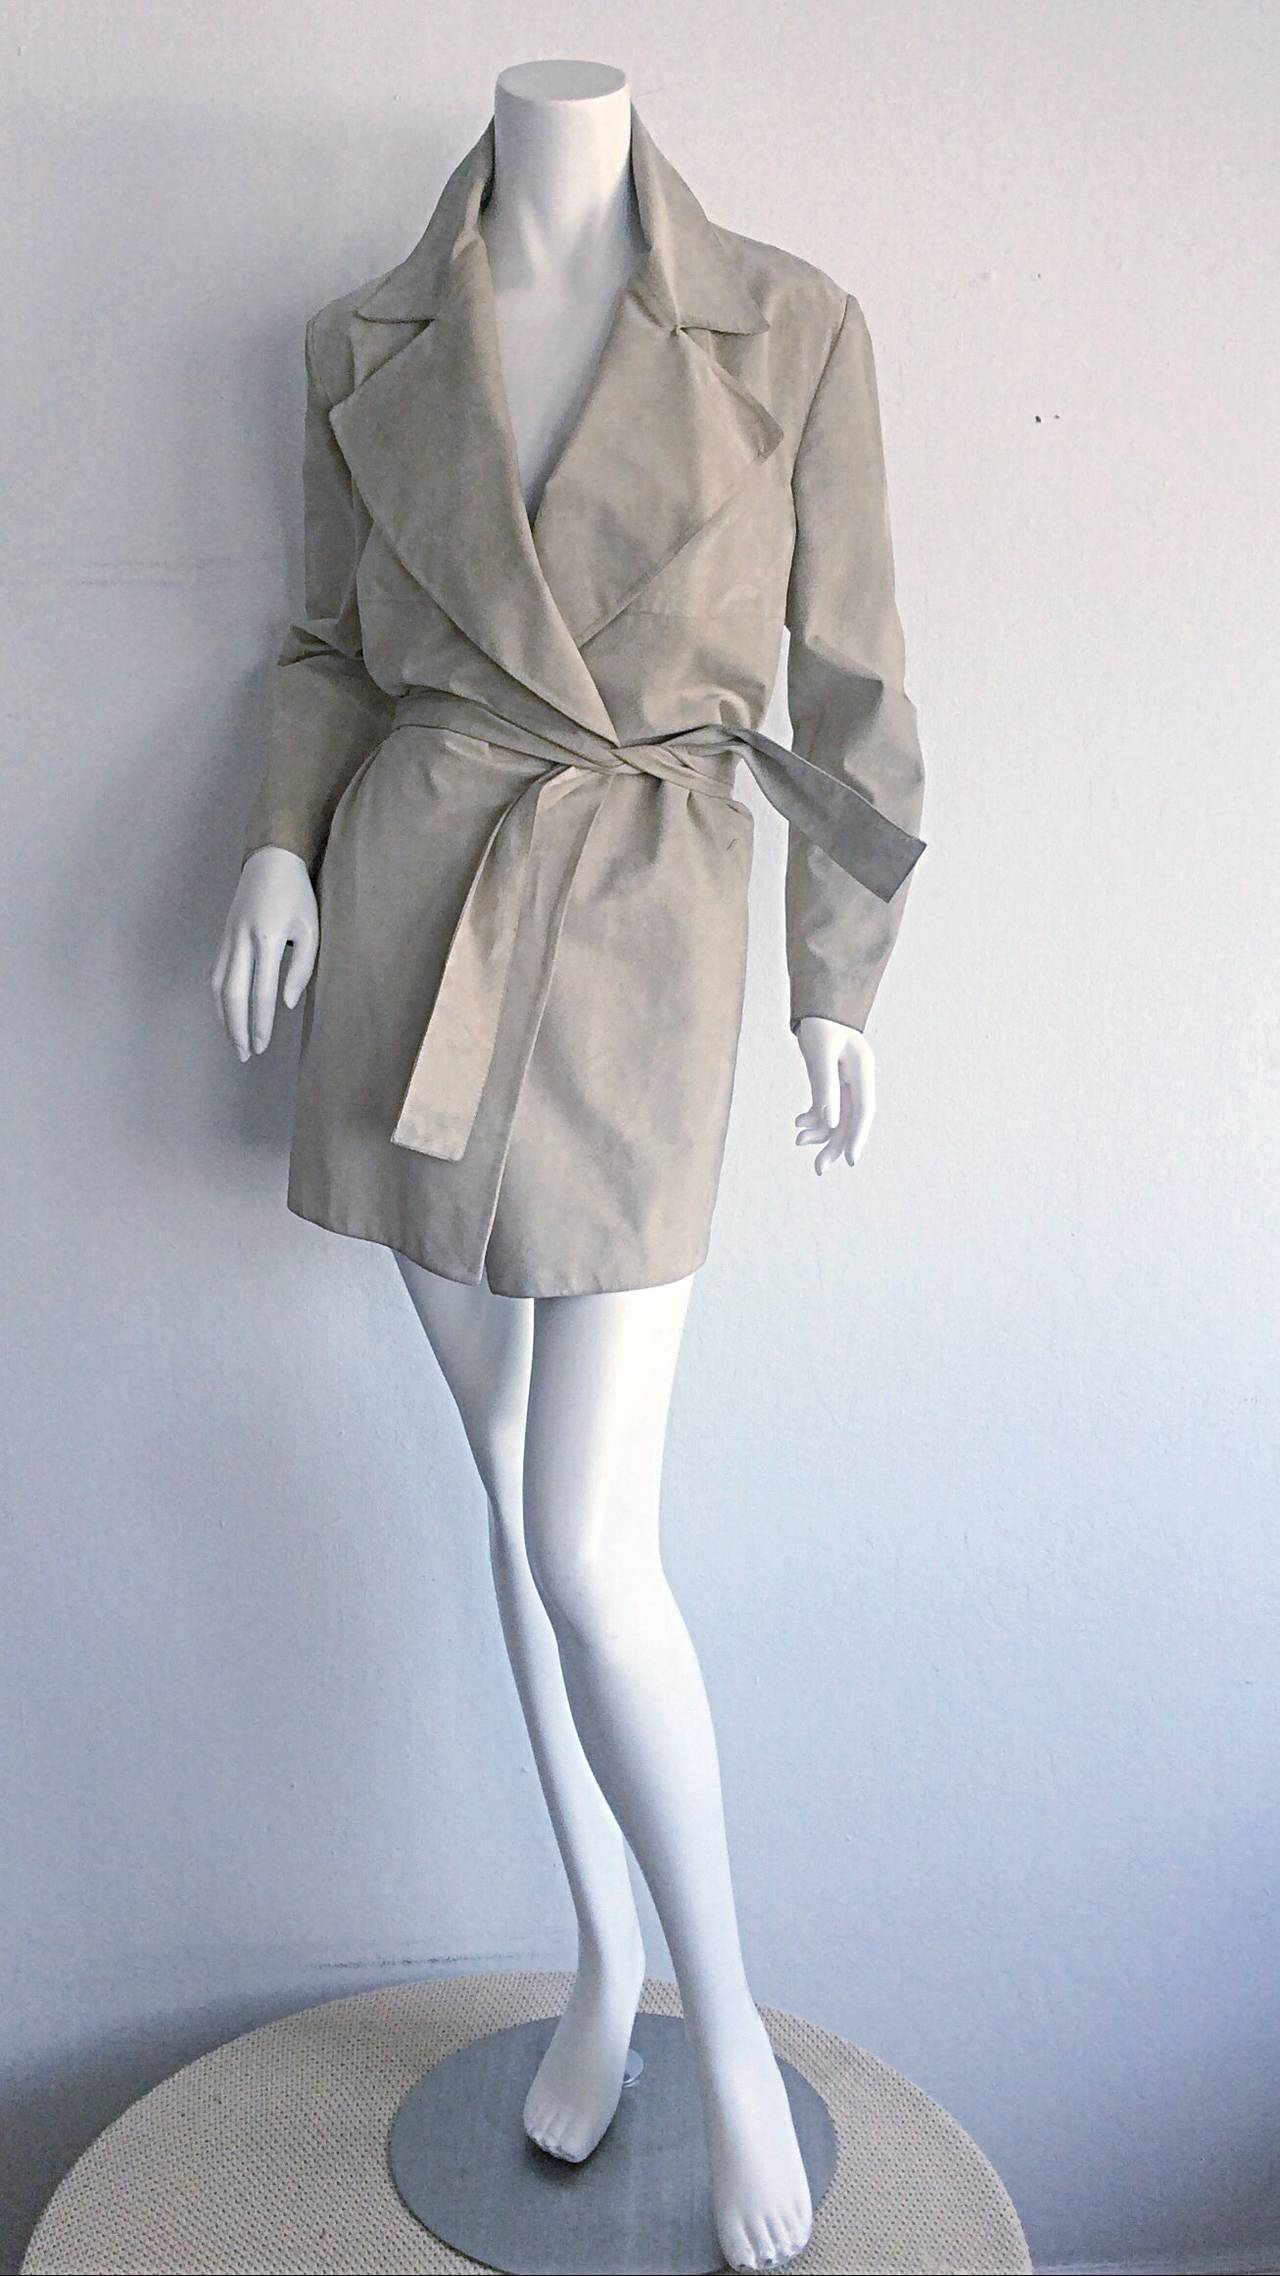 Tom Ford For Gucci 1990s Suede Leather Stone Khaki Belted Spy Trench Coat Jacket For Sale 1